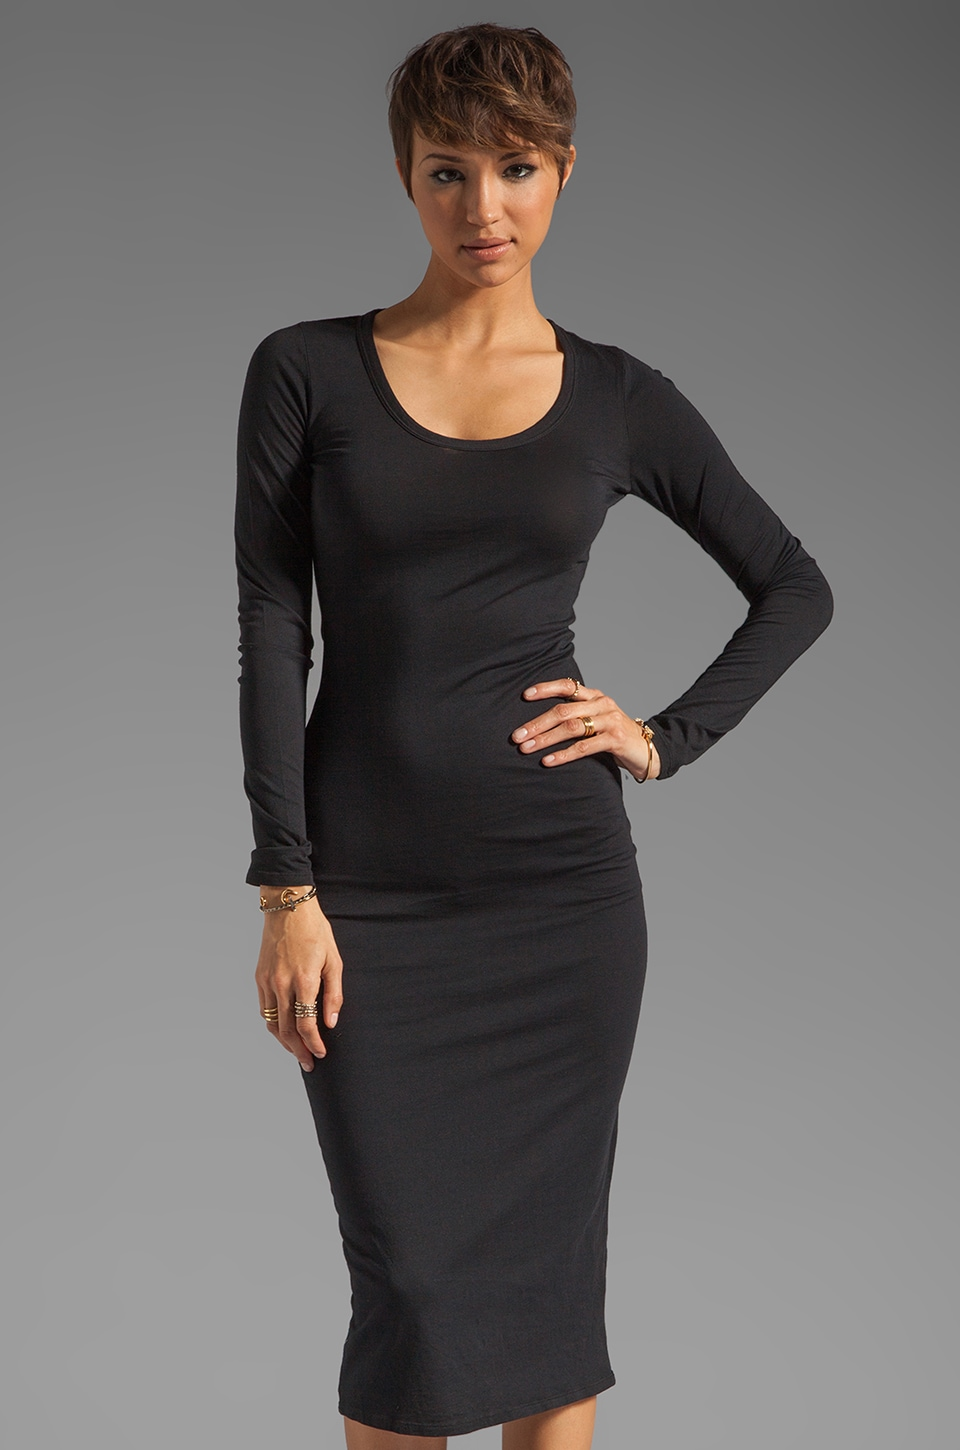 Bobi Modal Jersey Long Sleeve Dress in Black